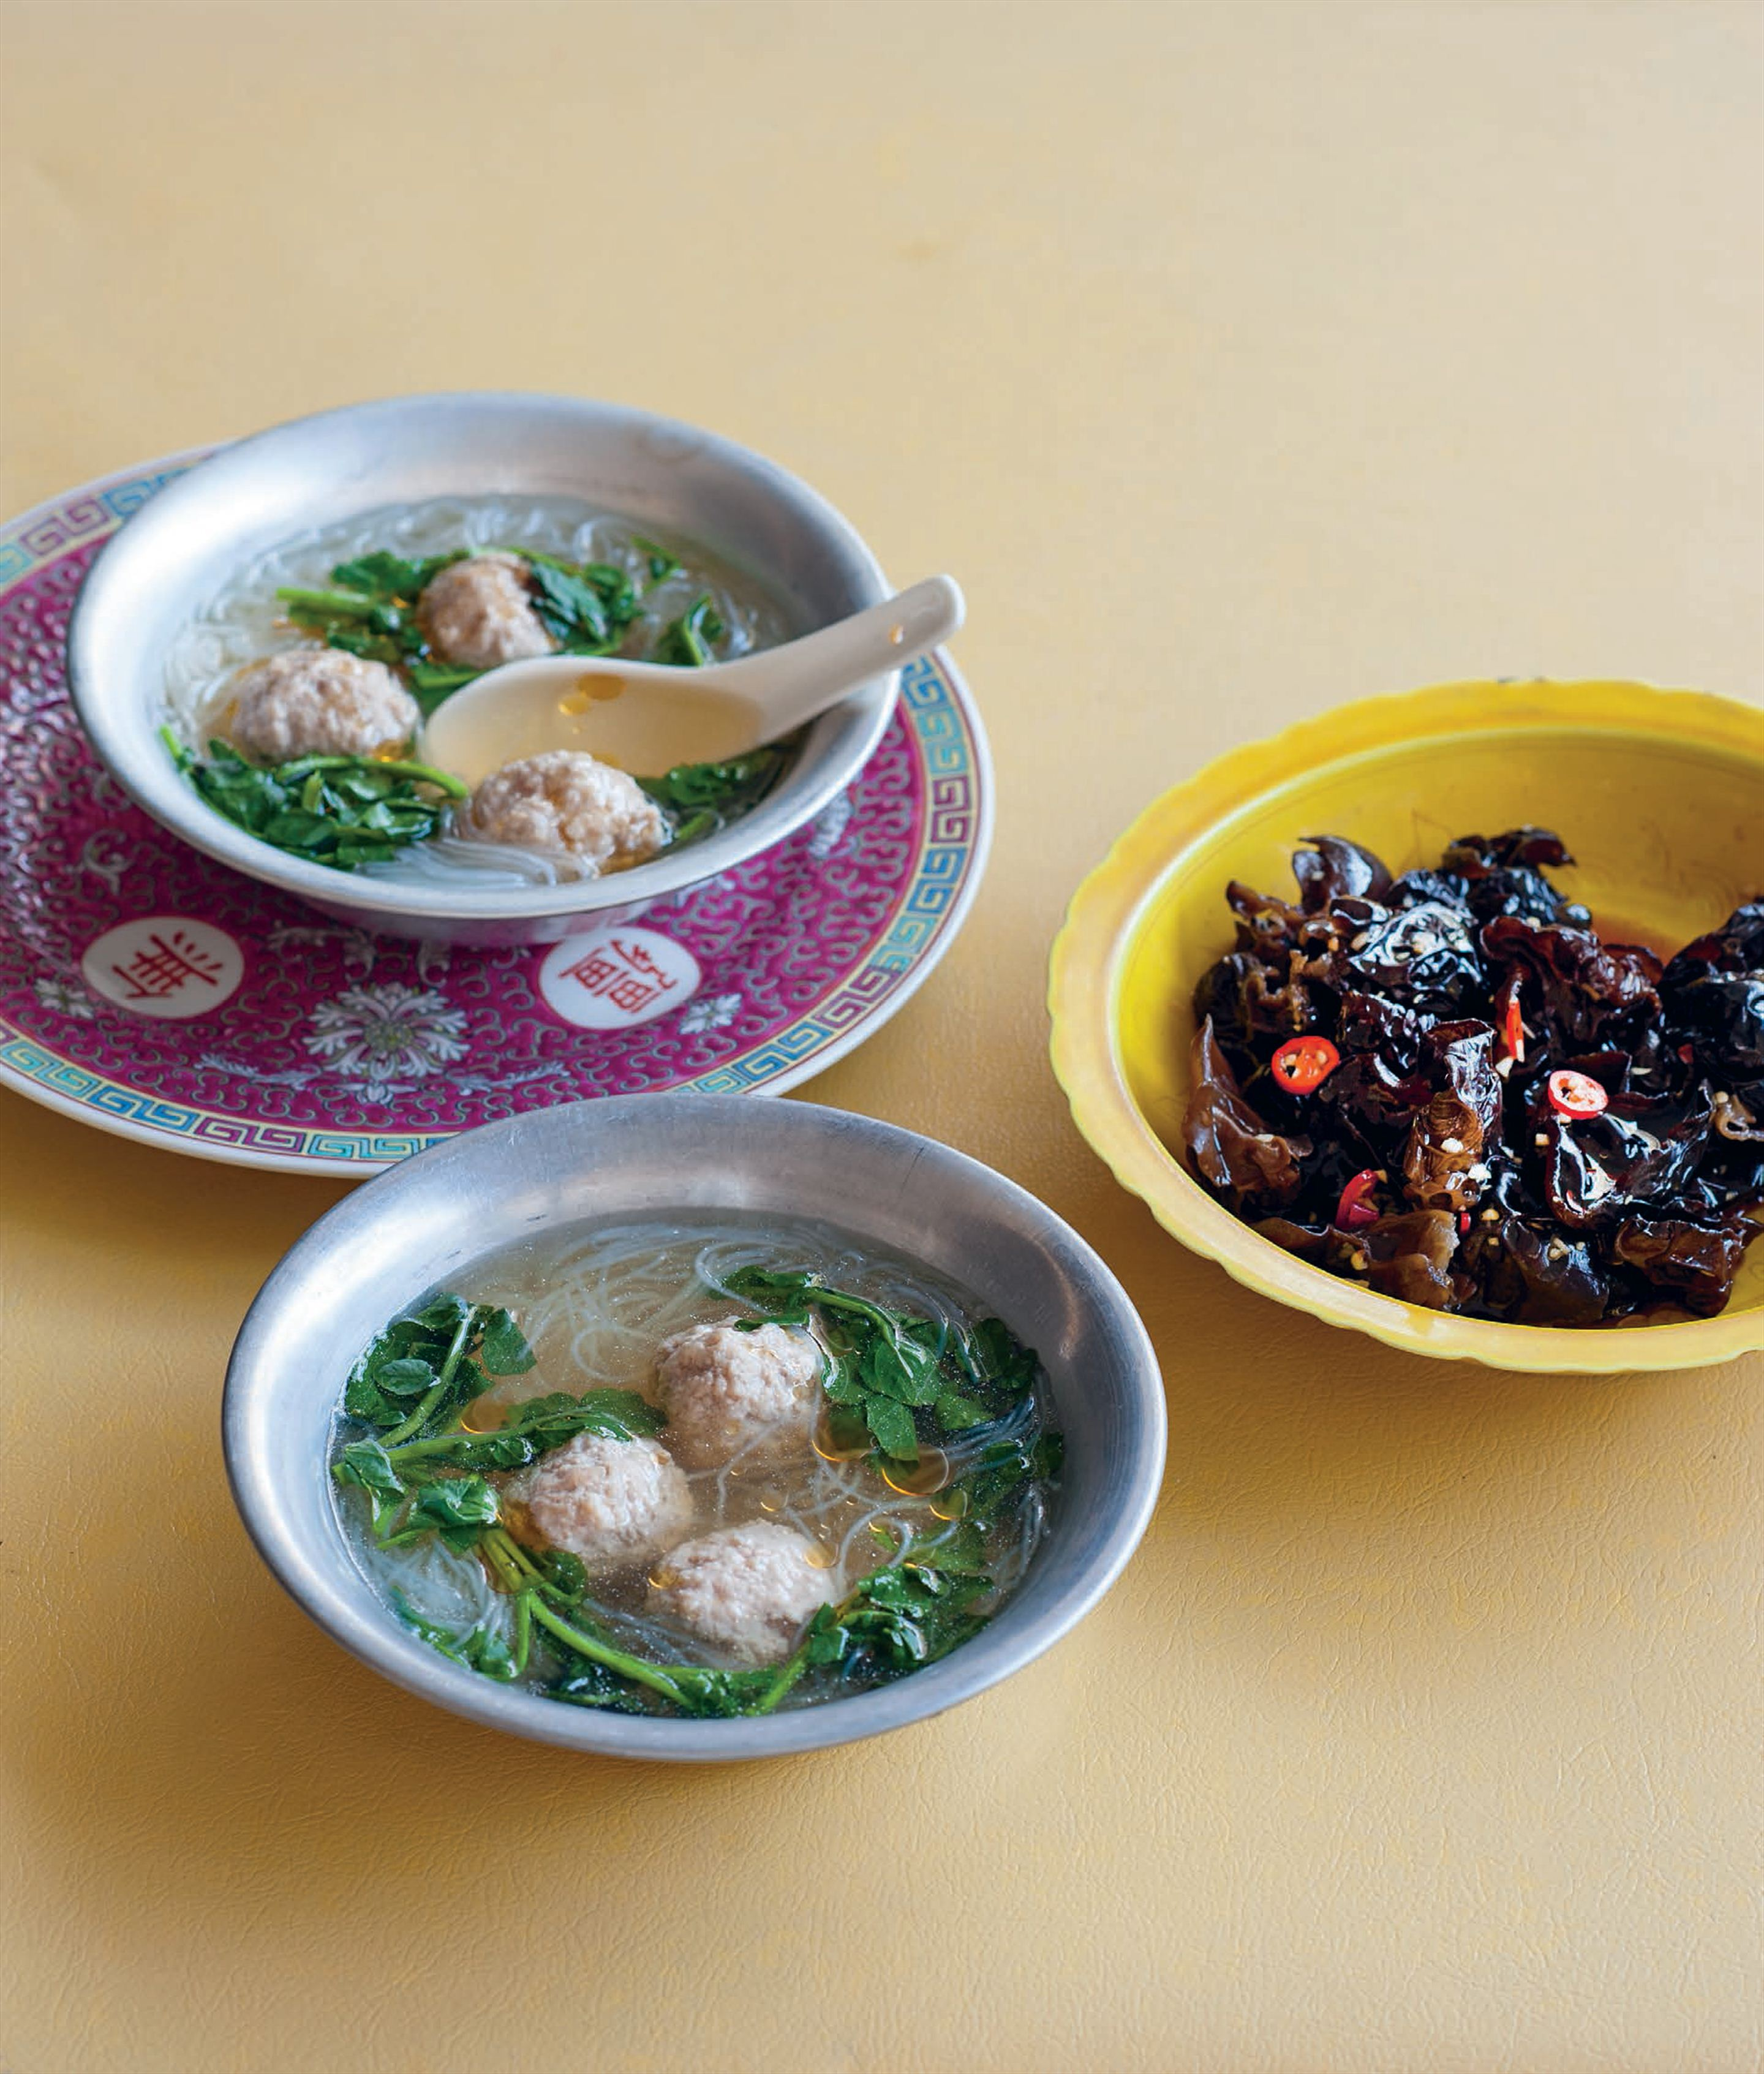 Cress and pork ball soup